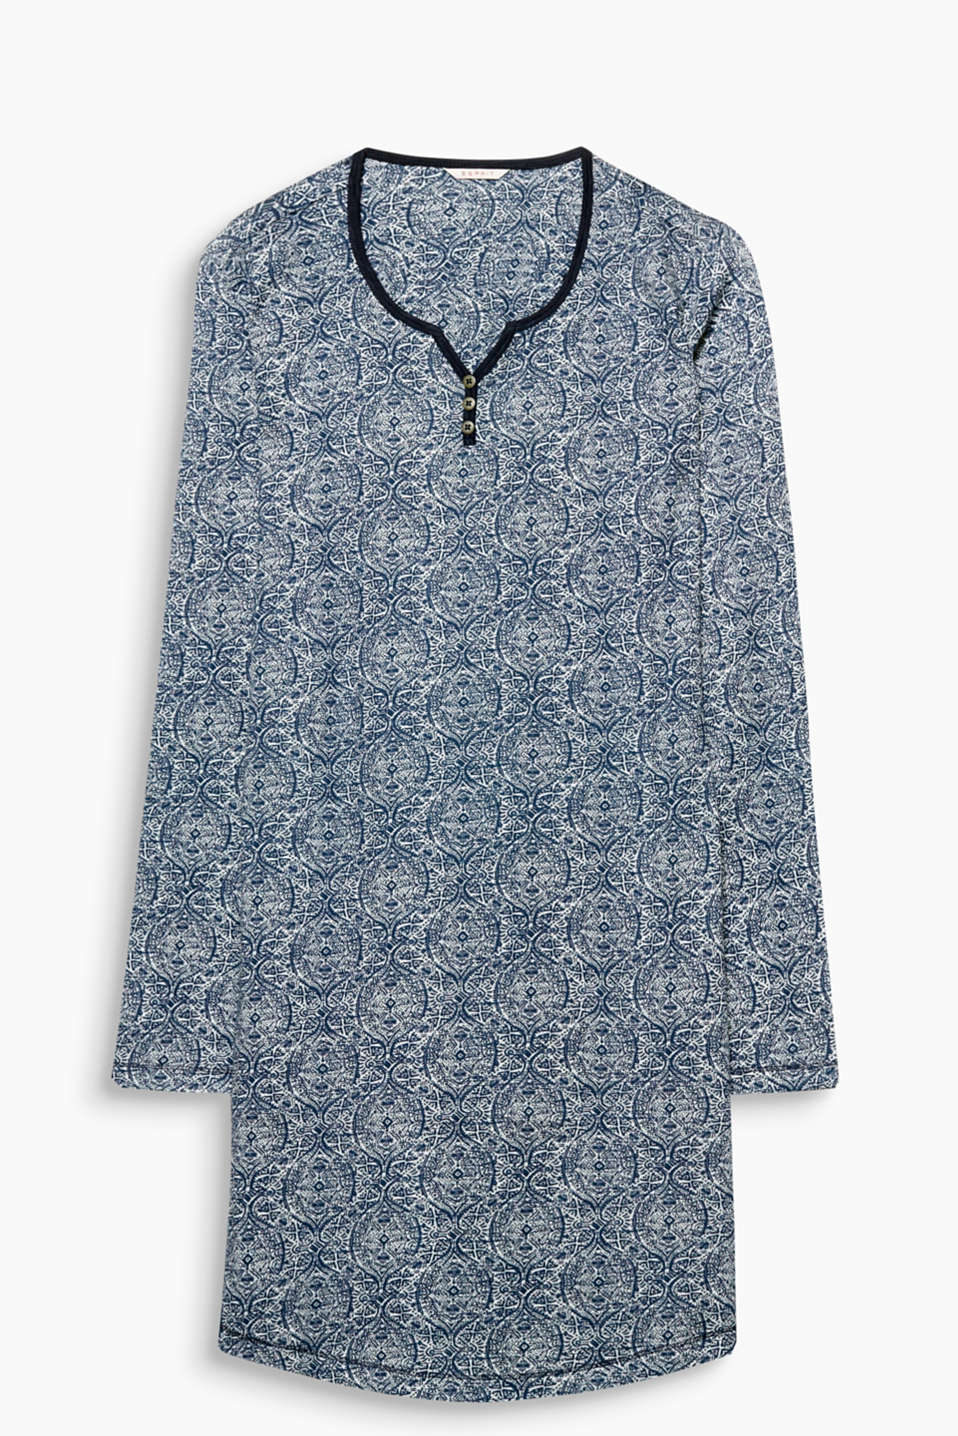 A cool combination: beautiful blue and a decorative print! Cotton-jersey nightshirt with a Henley neckline